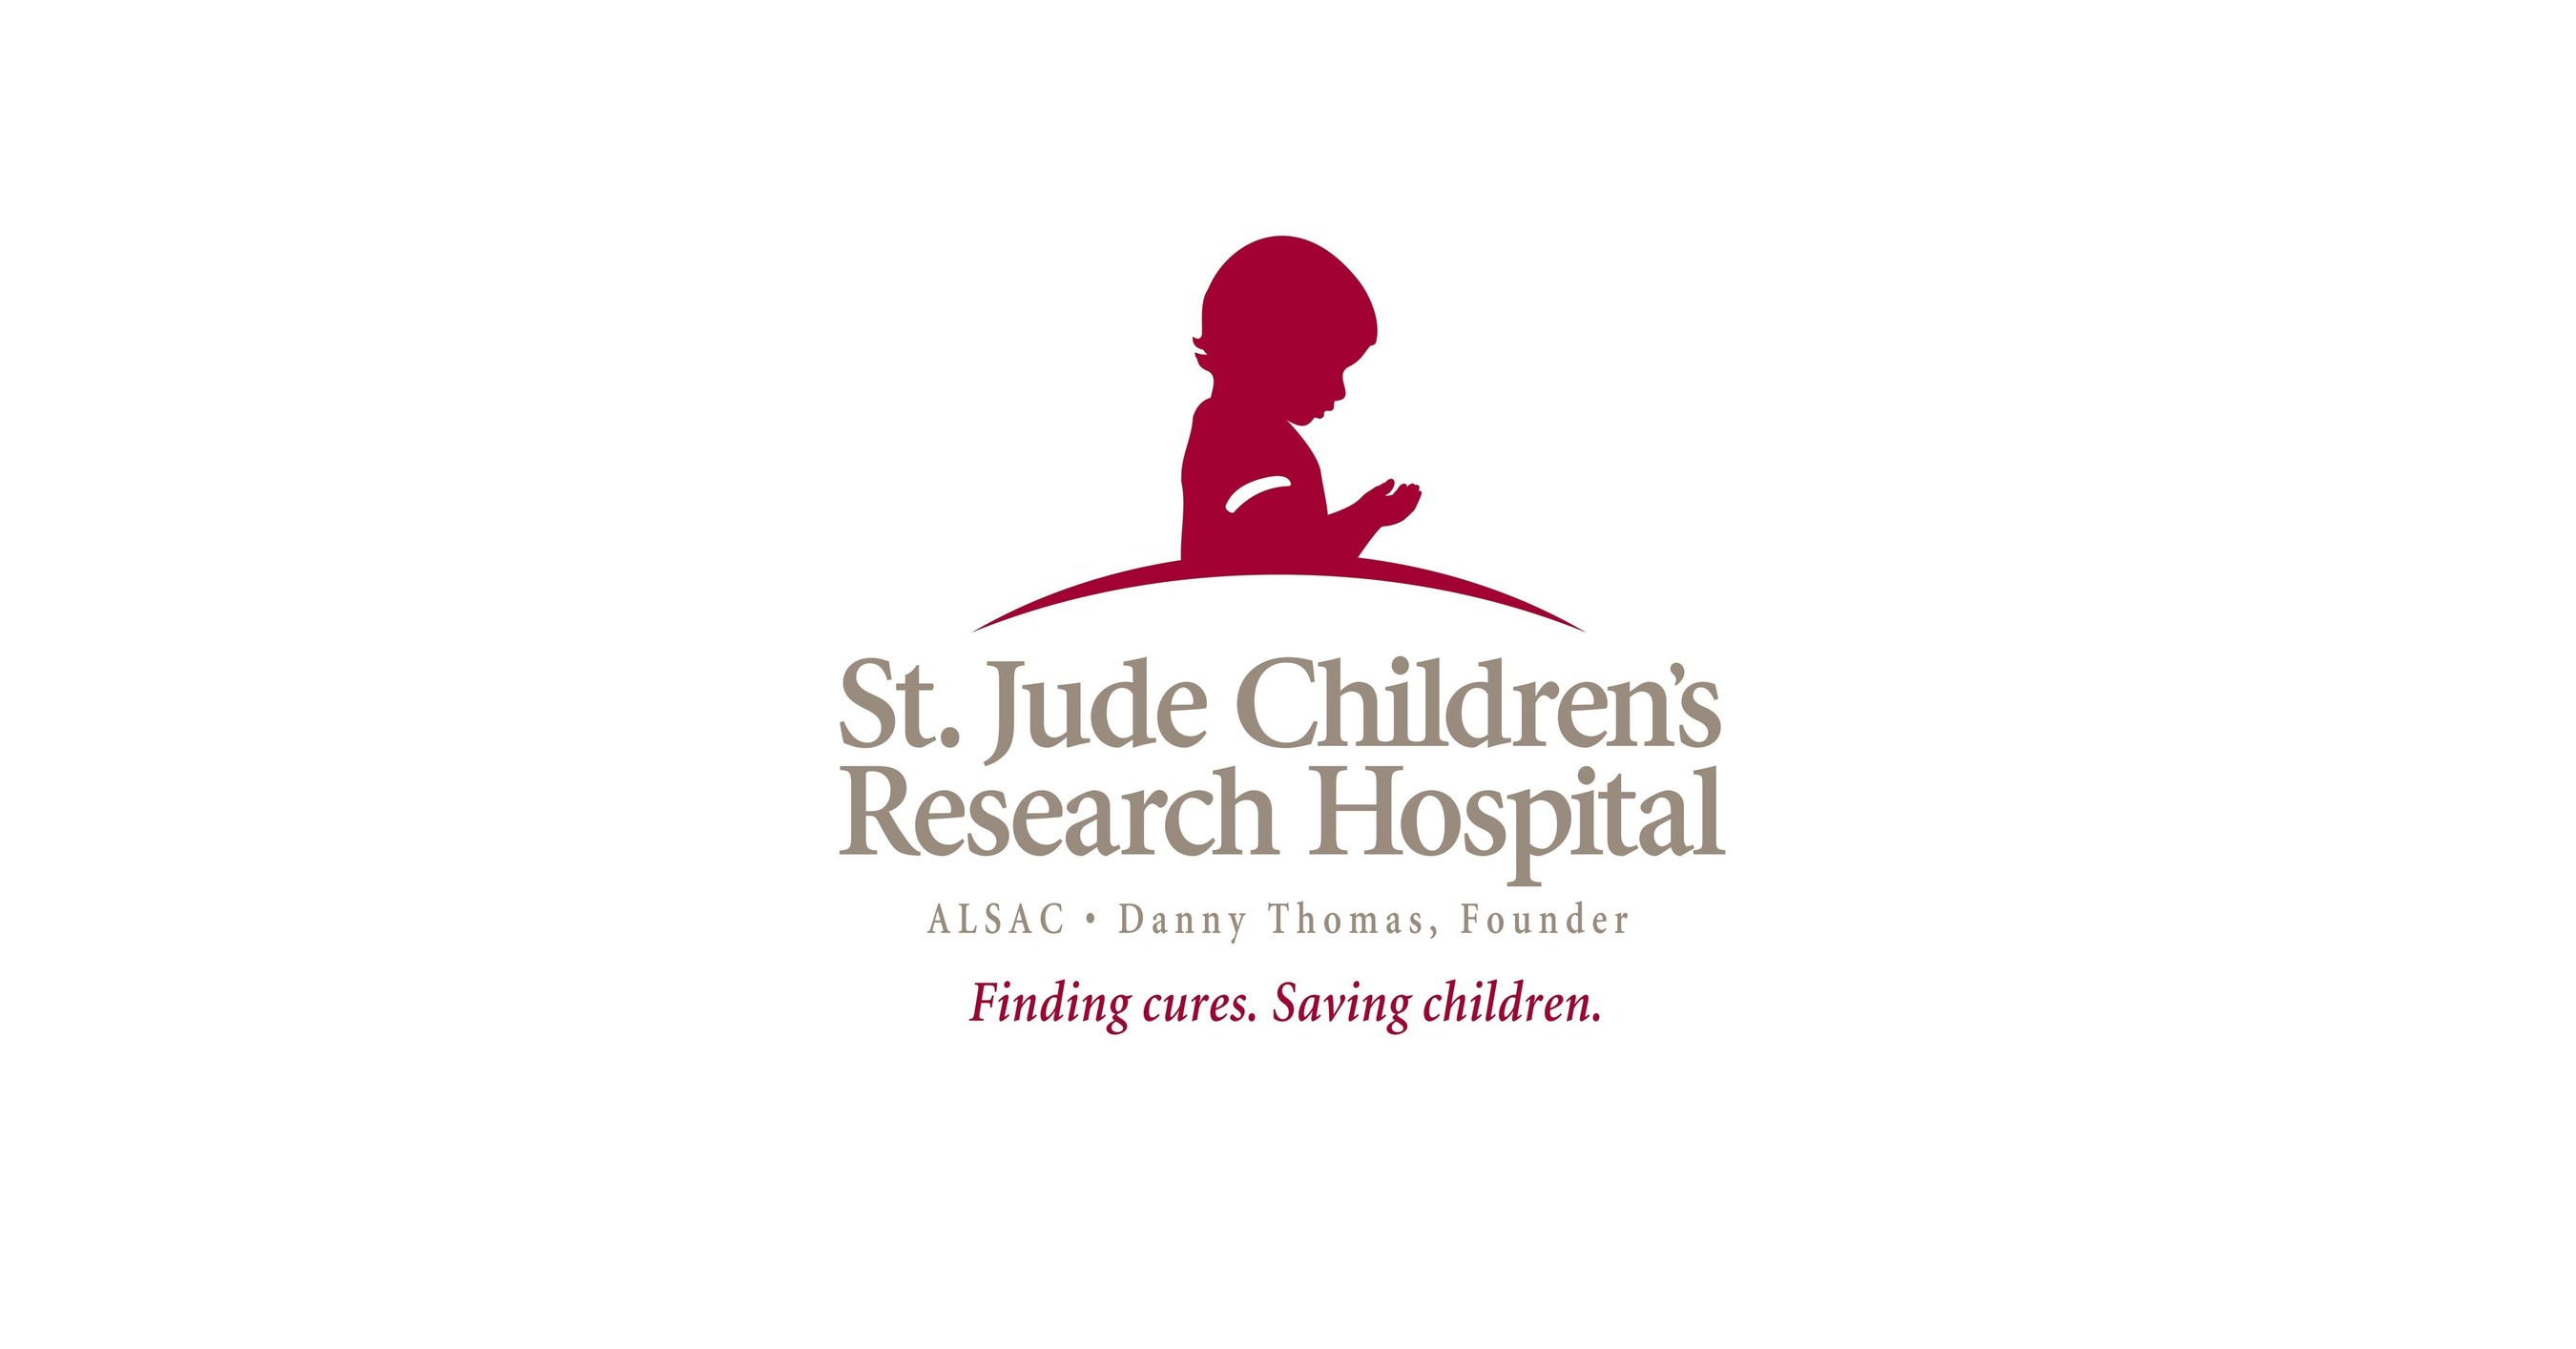 media statement from st  jude children u0026 39 s research hospital